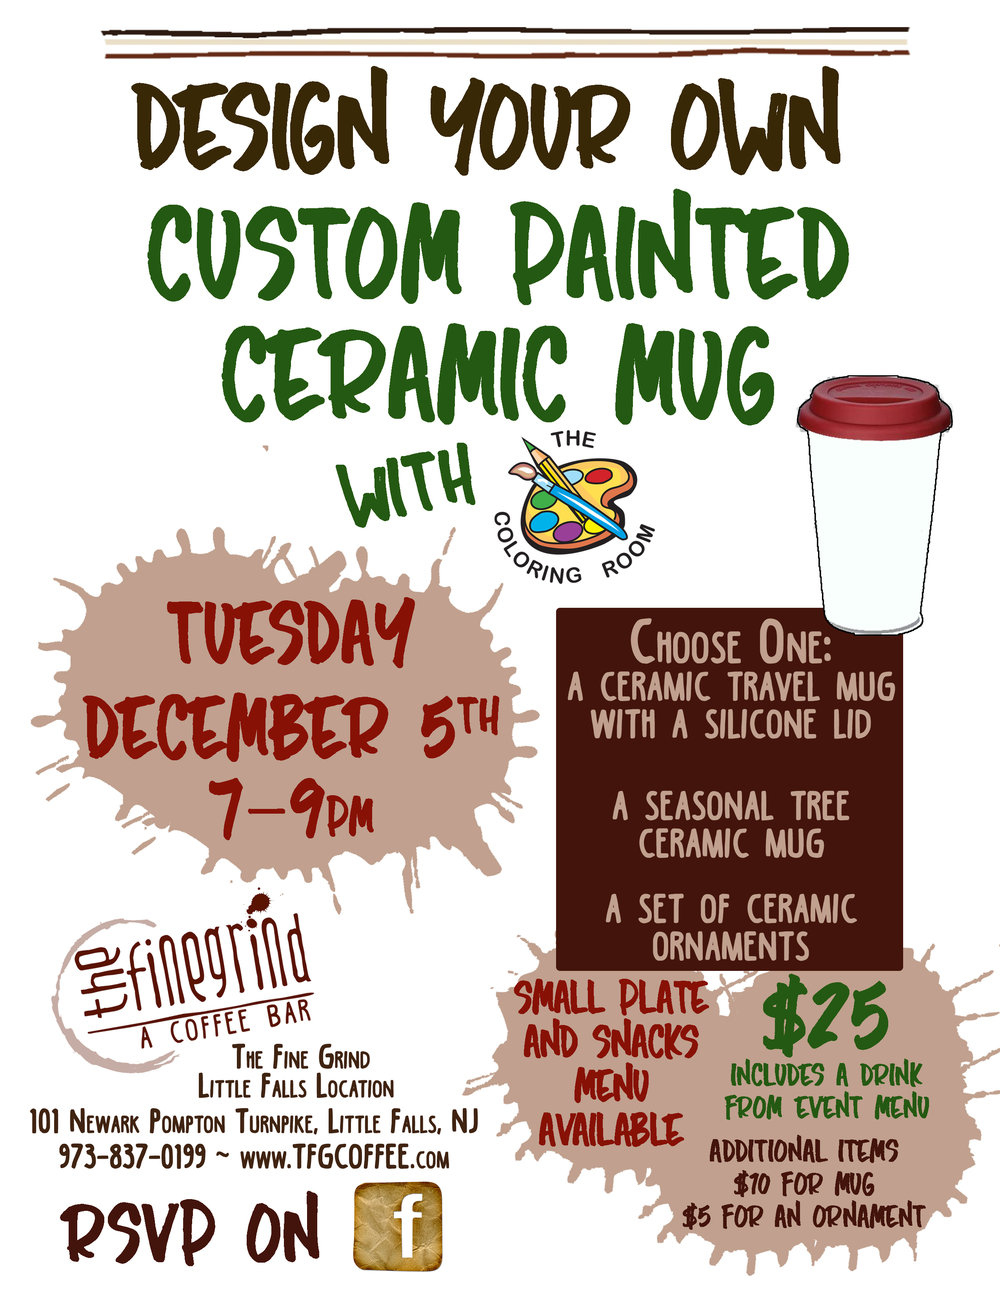 Post Ceramic Mug Painting 12-17.jpg